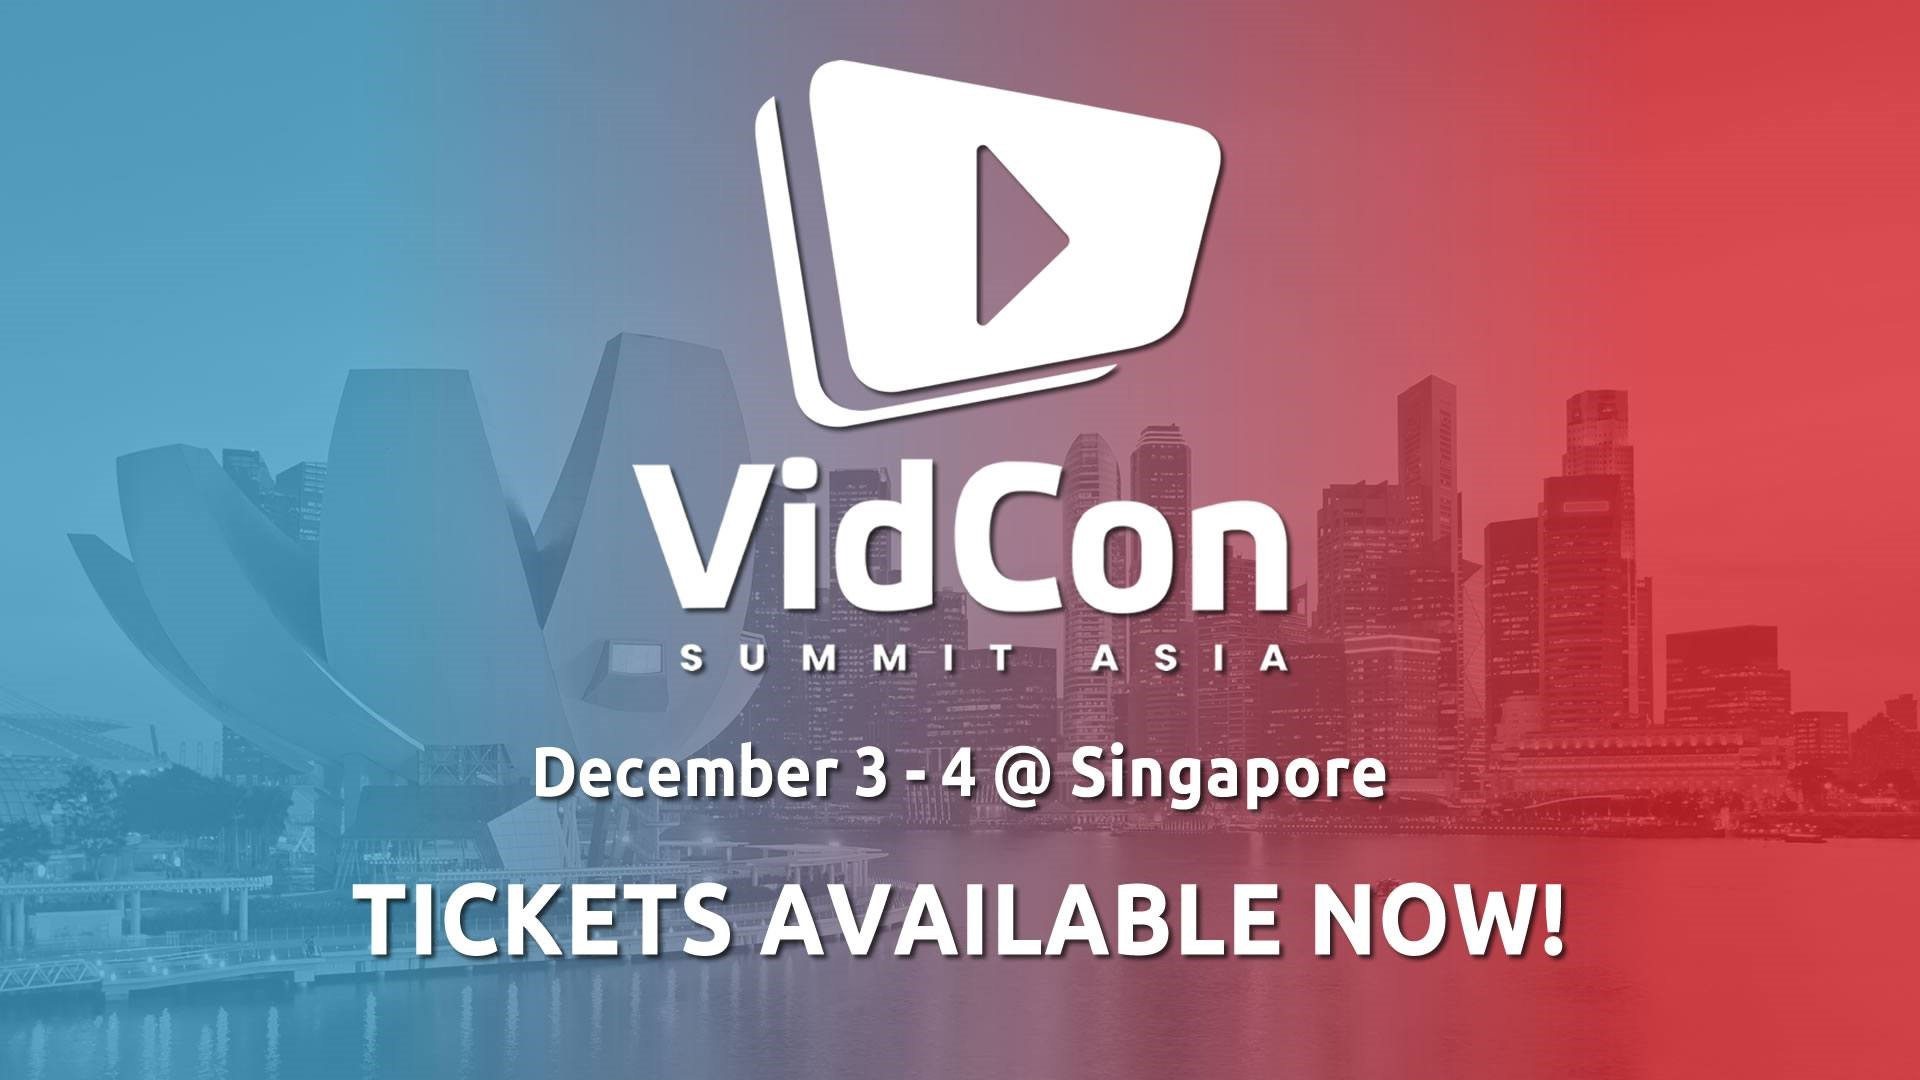 VidCon Summit Asia 2019